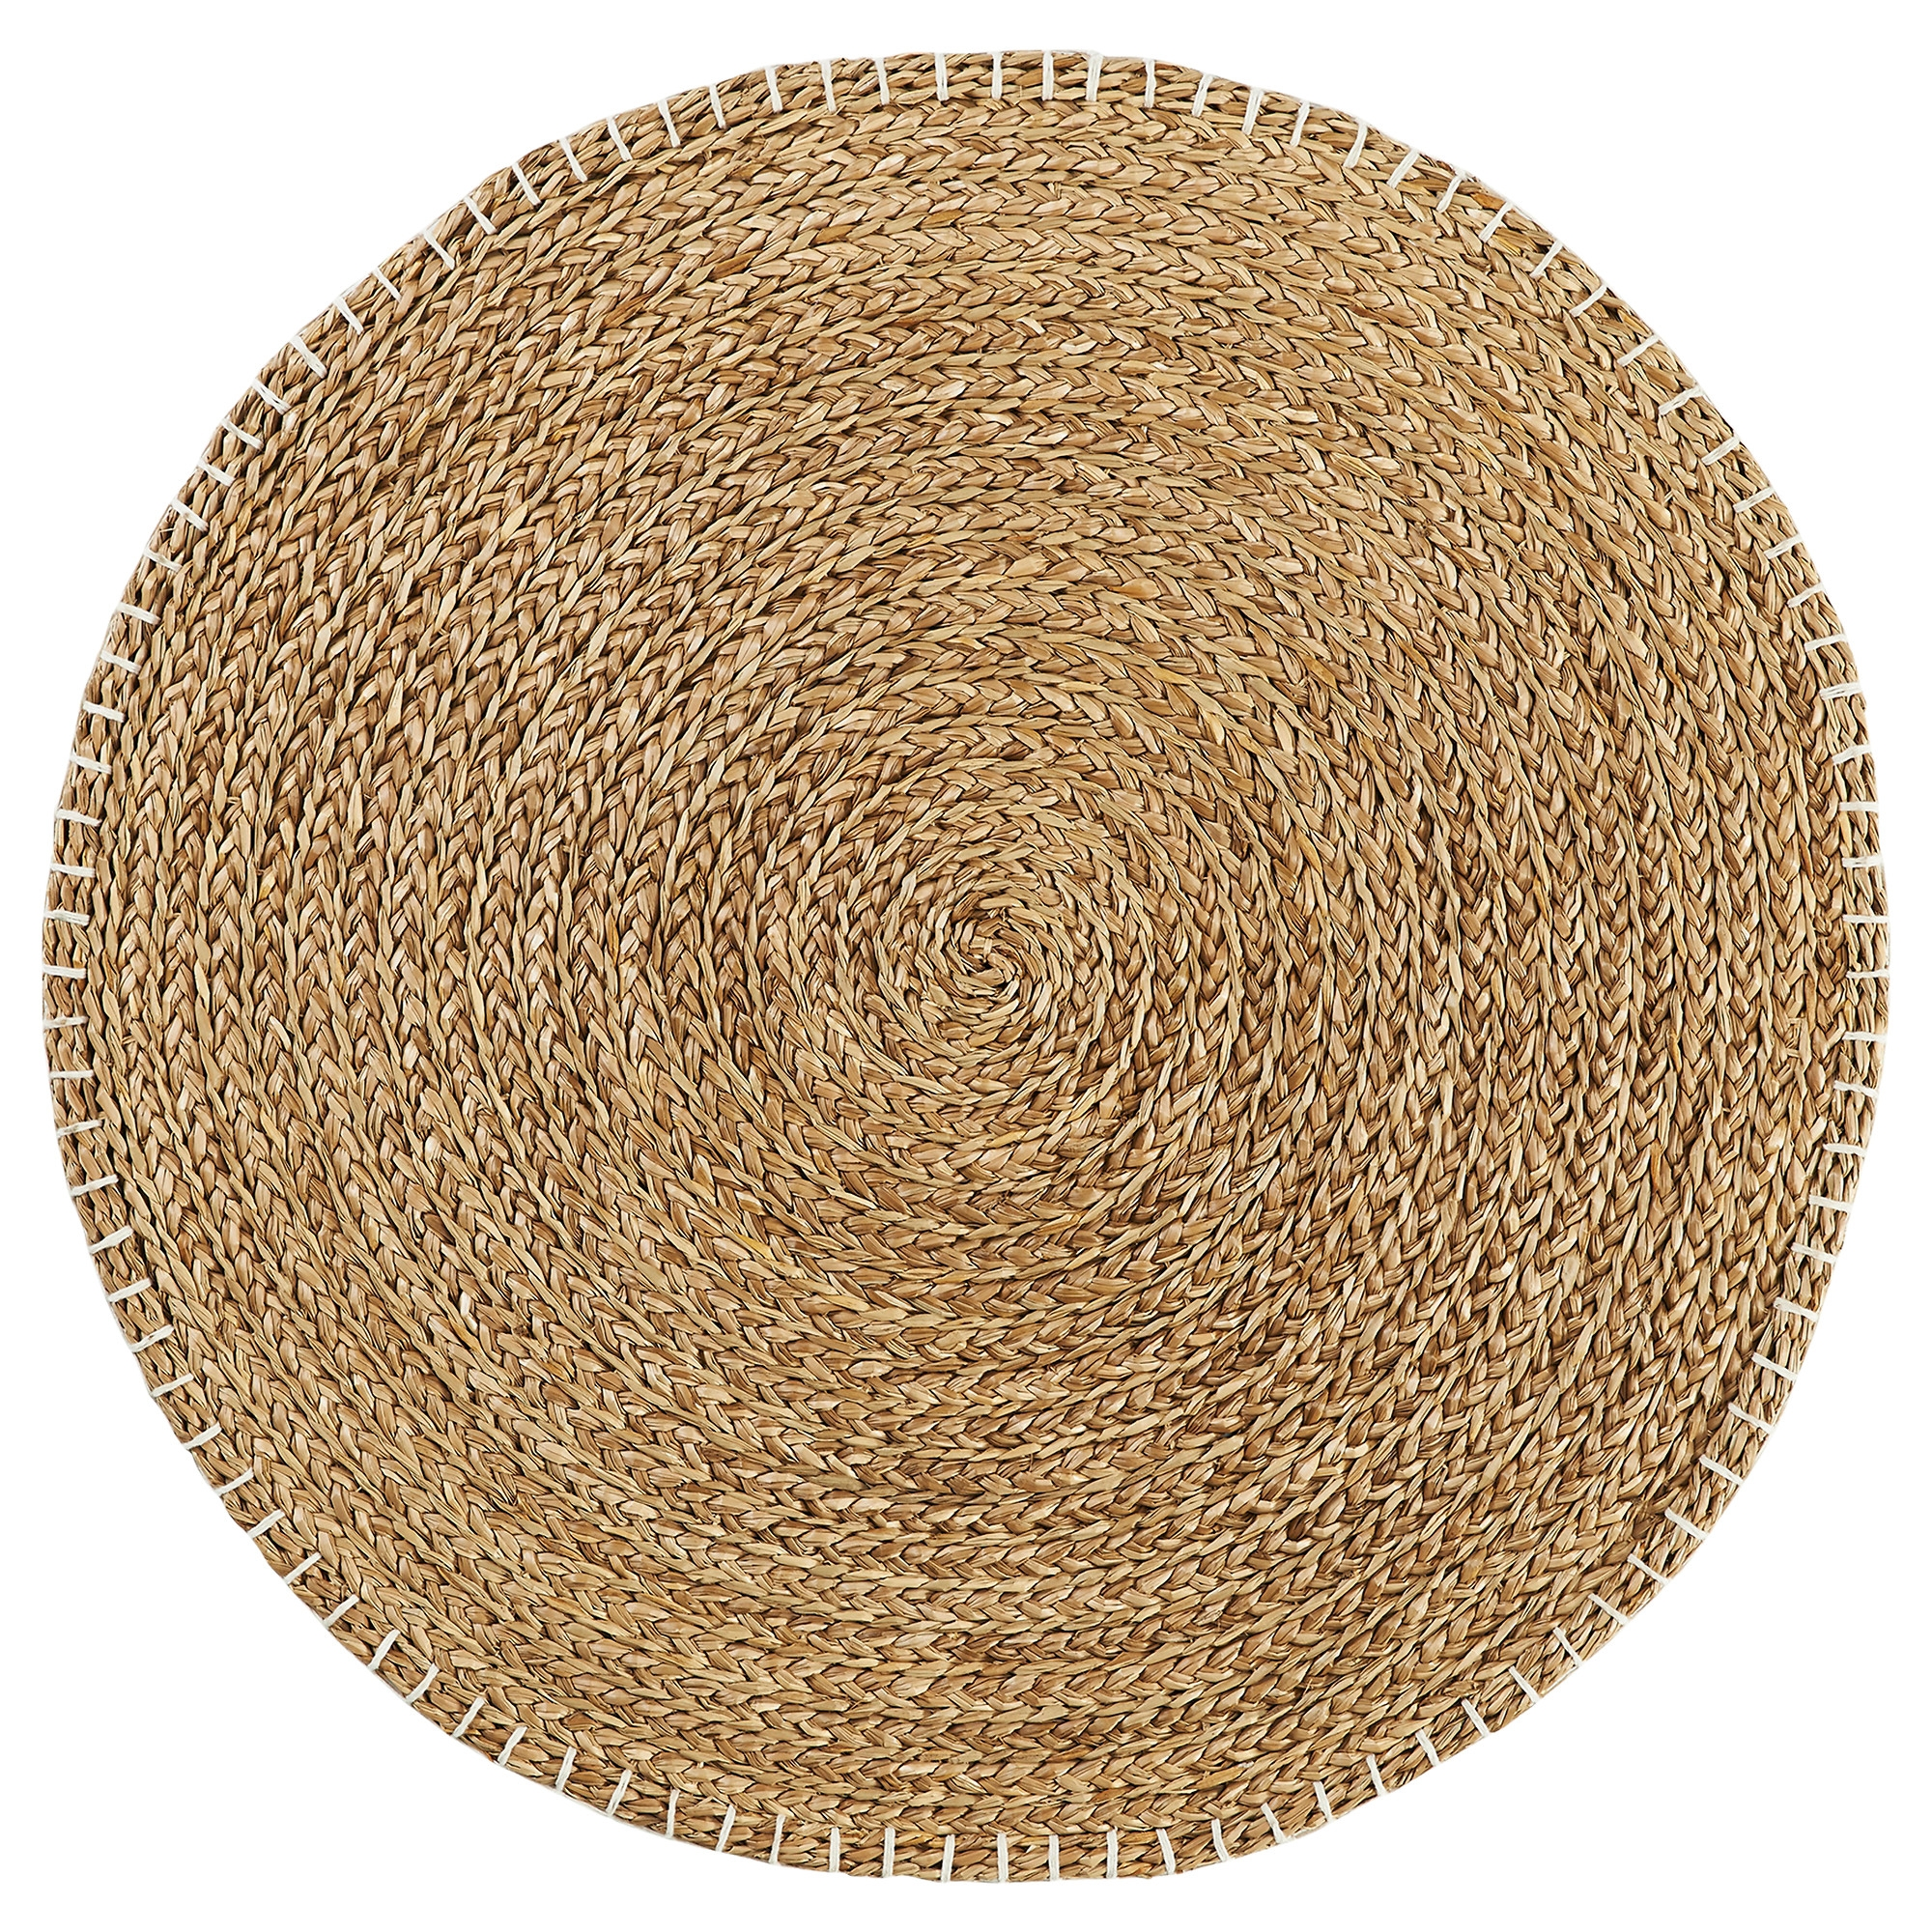 Round Rugs Ikea Intended For Circular Rugs (View 5 of 15)